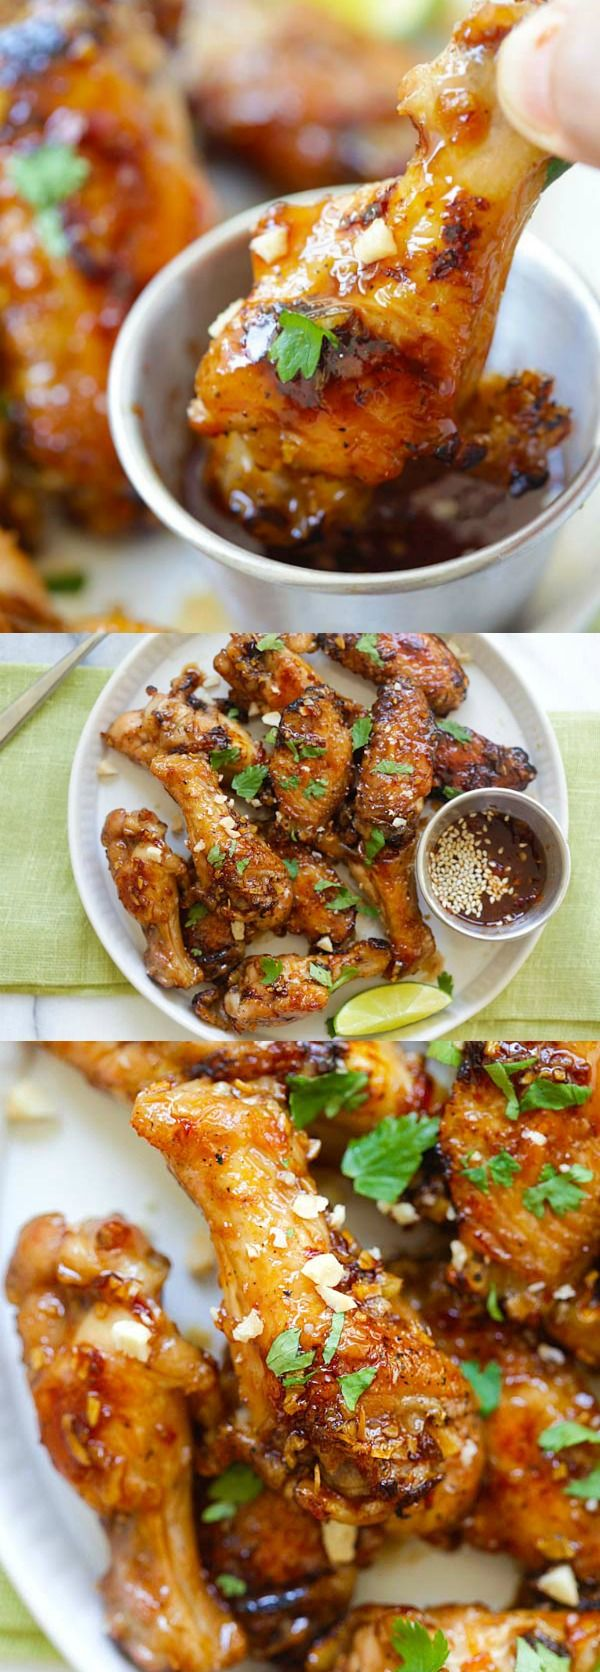 Sticky Asian Chicken Wings – amazing chicken wings coated with savory, sweet and sticky honey garlic chili glaze. BEST Asian chicken wings recipe ever   rasamalaysia.com